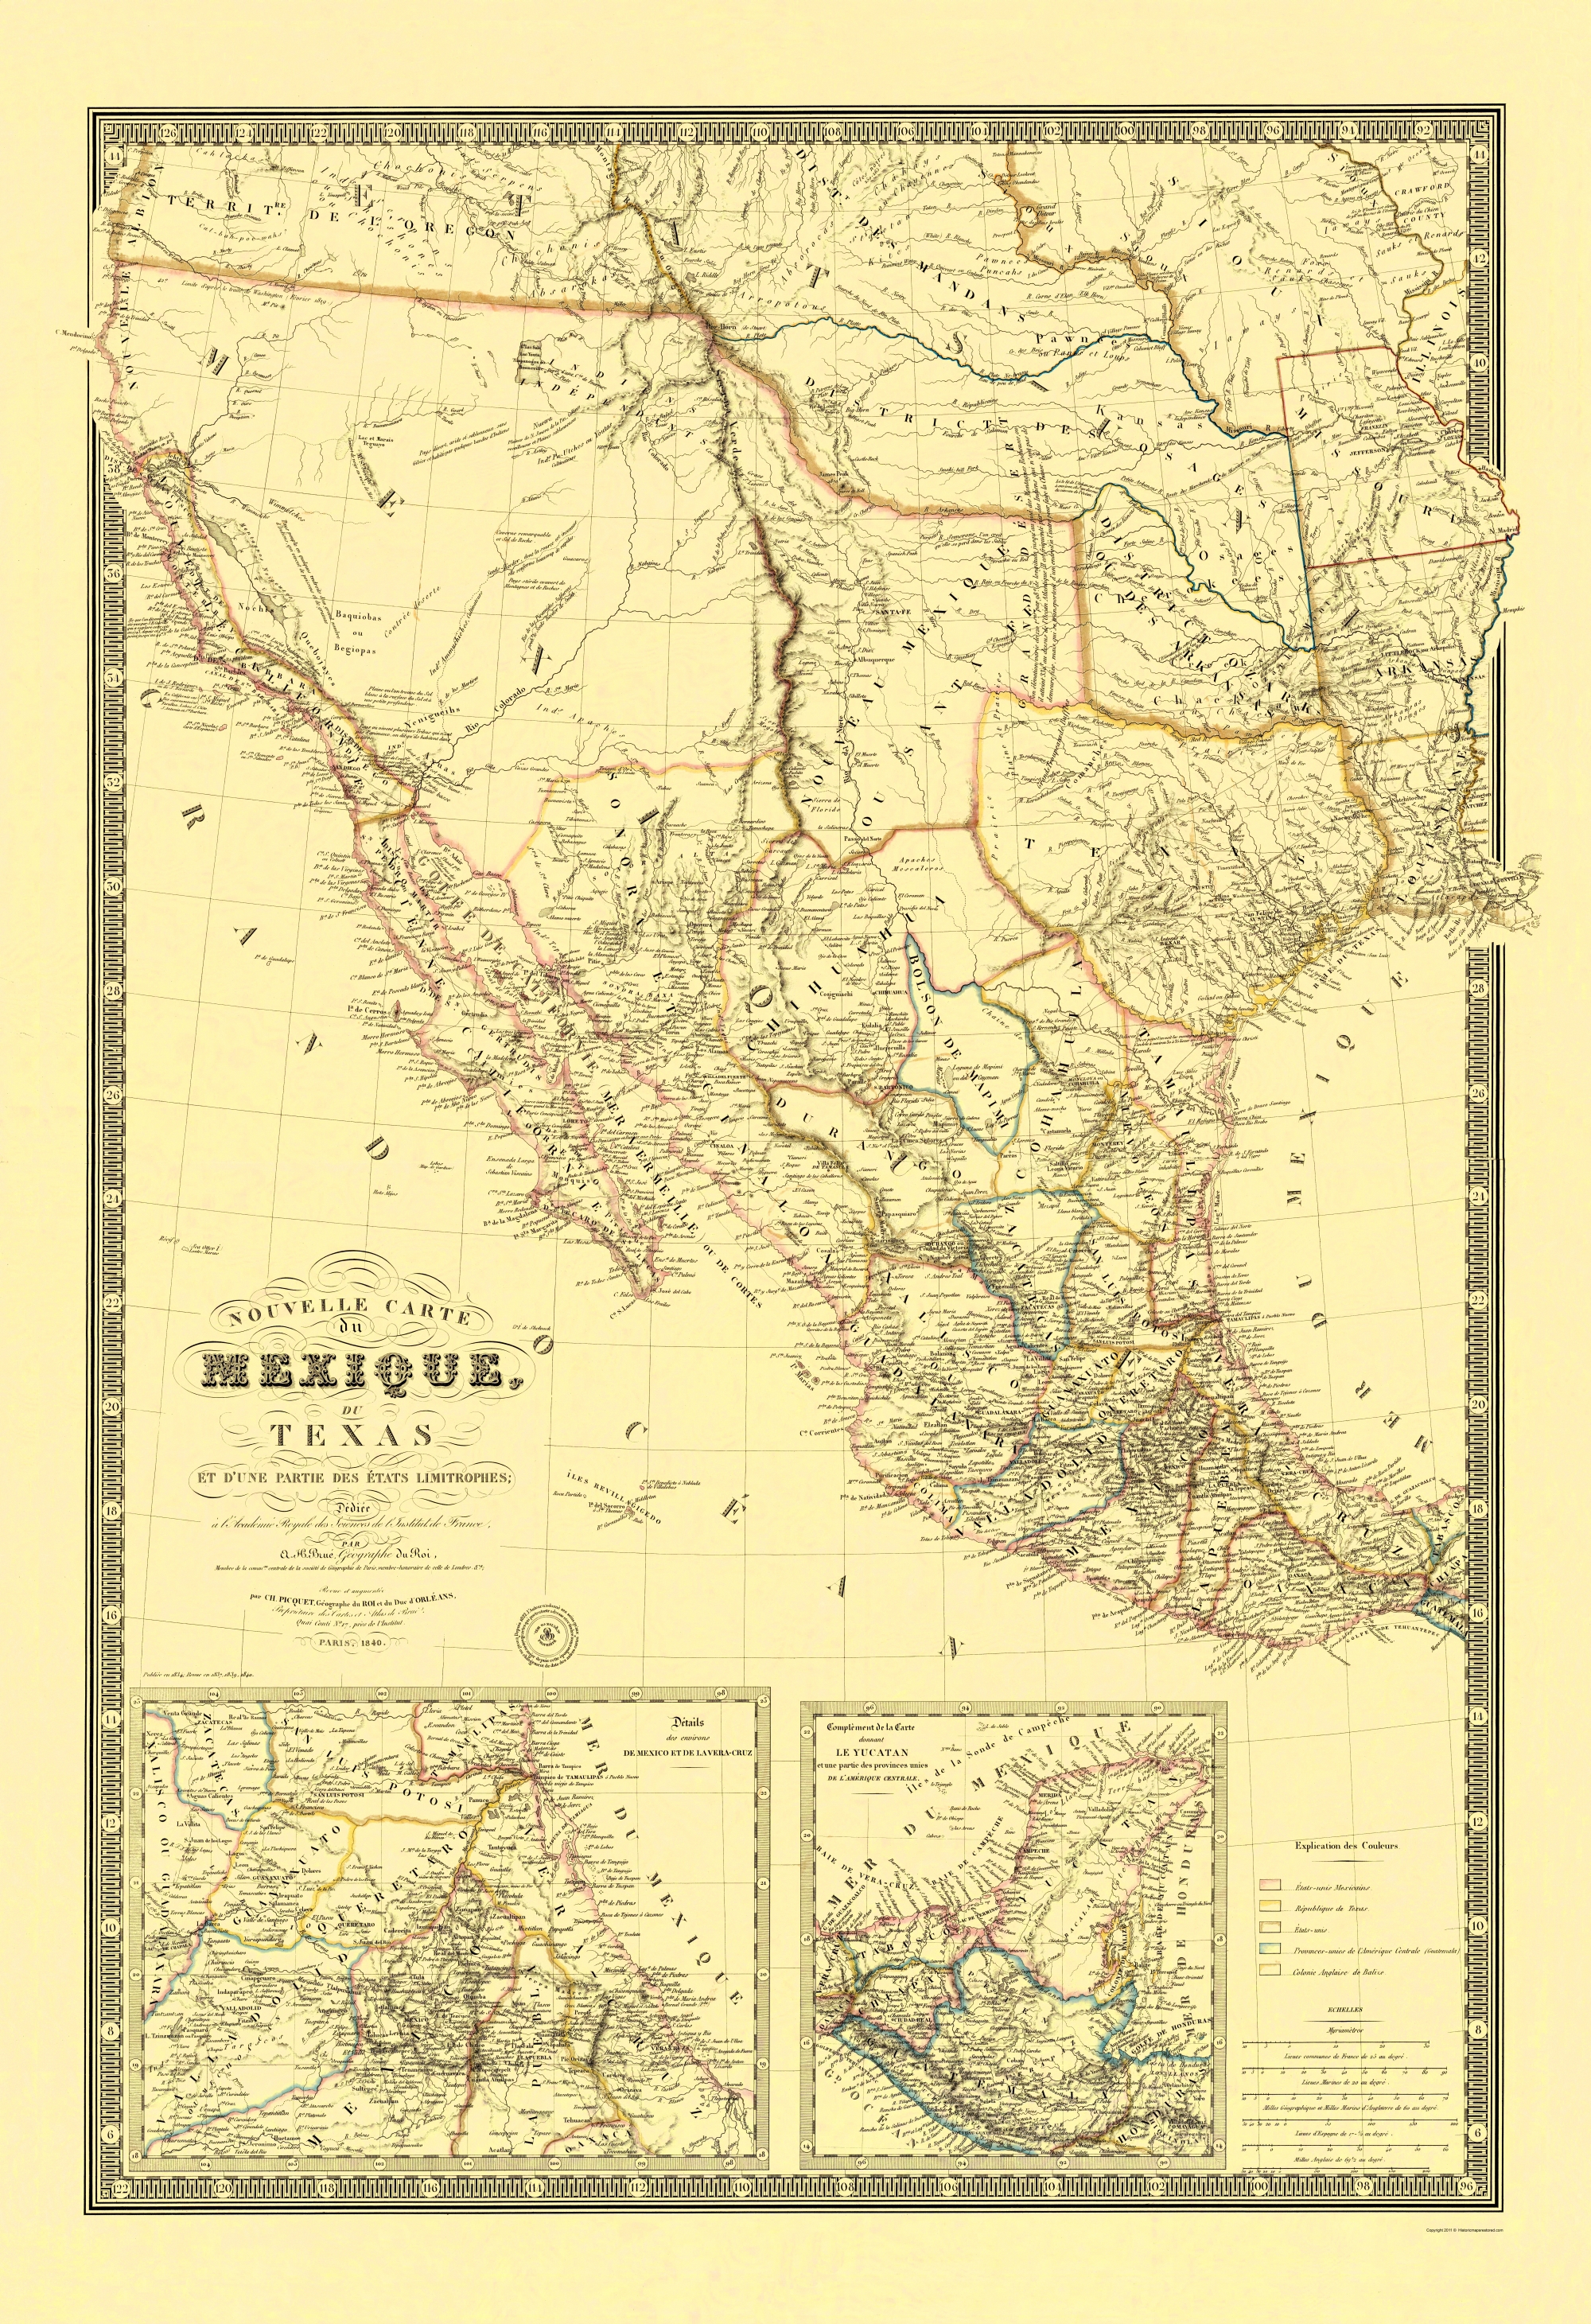 Map Of Texas Mexico.Old State Map New Map Of Mexico And Texas 1840 23 X 33 59